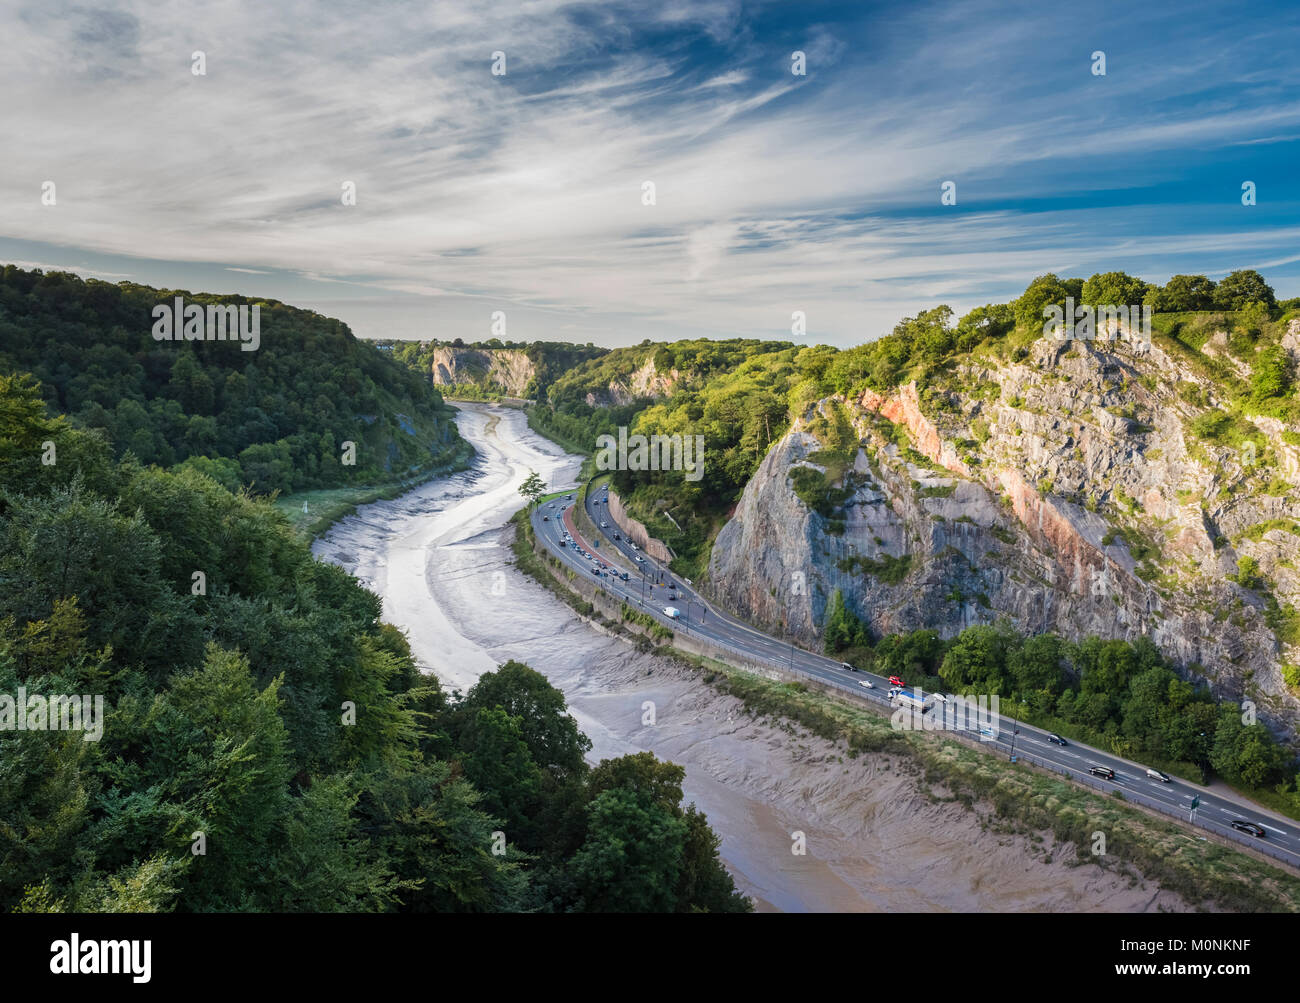 the-avon-gorge-with-the-river-avon-flowi